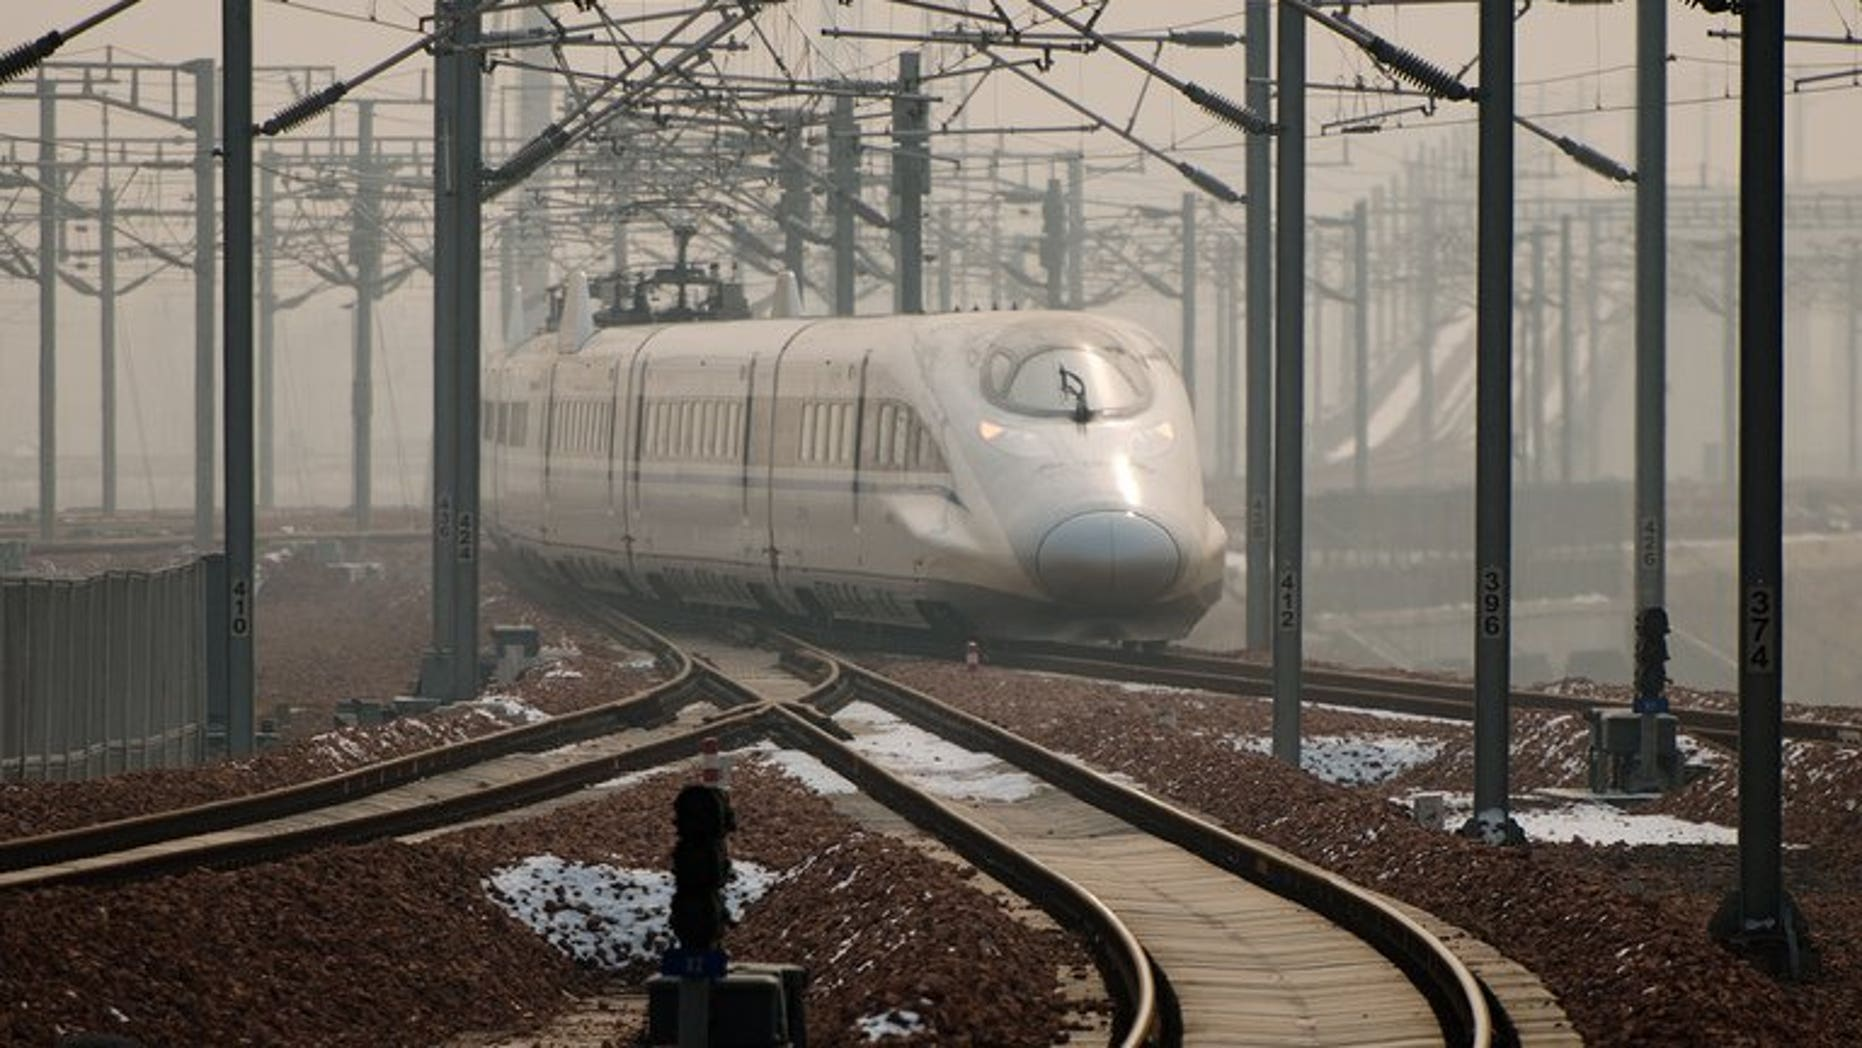 A high-speed train departs a platform in Hebei province south of Beijing on December 22, 2012. Senior official from teh country's disgraced railways ministry, Zhang Shuguang, went on trial Tuesday accused of bribery.